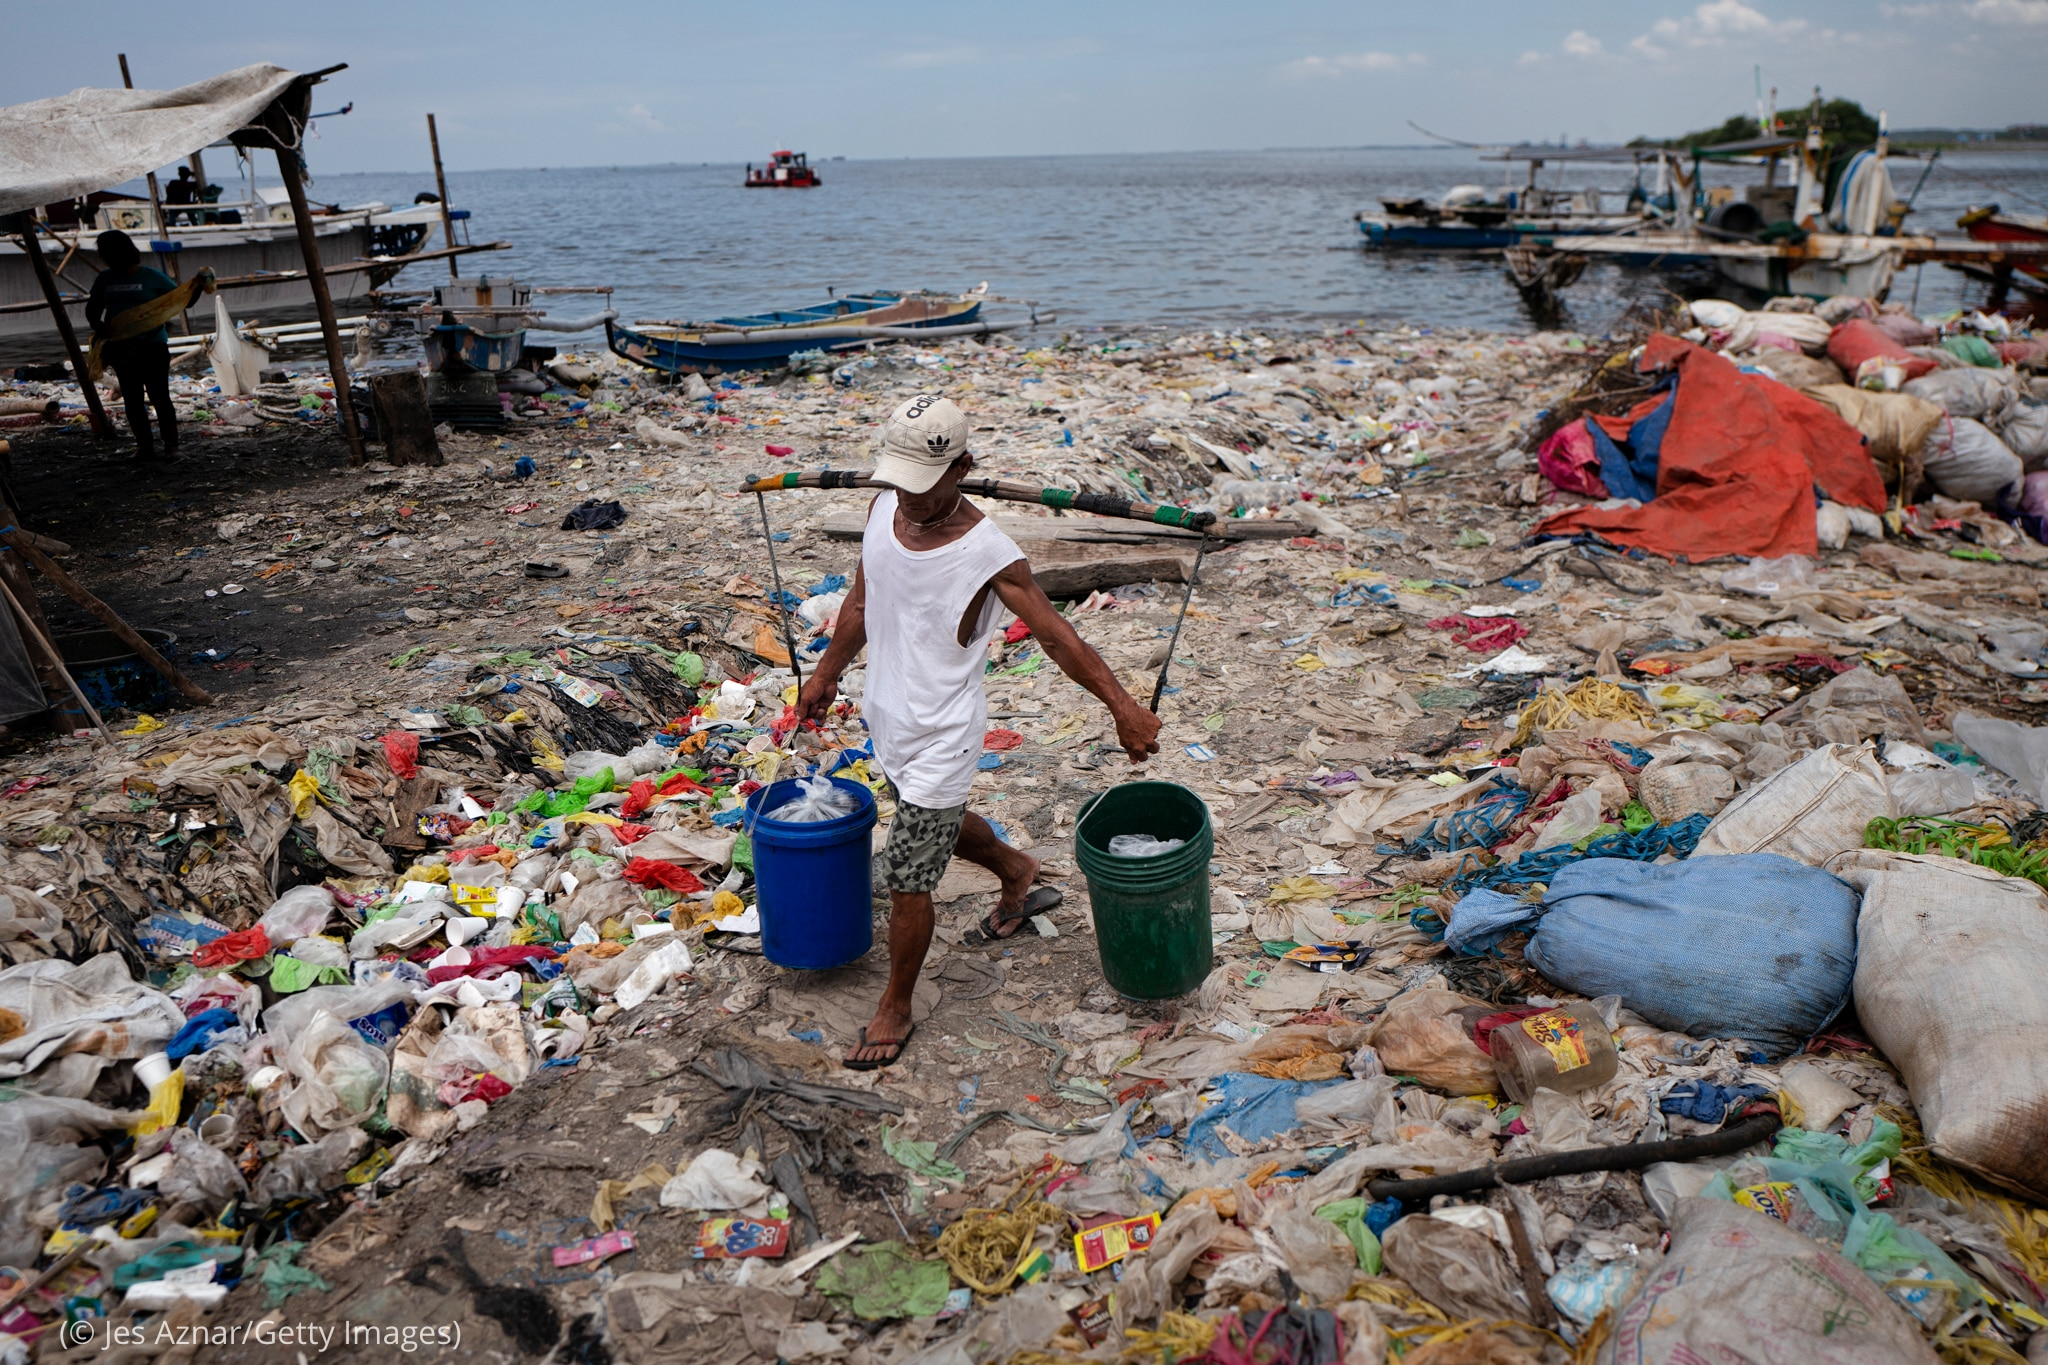 Man carrying two buckets on beach covered in litter (© Jes Aznar/Getty Images)